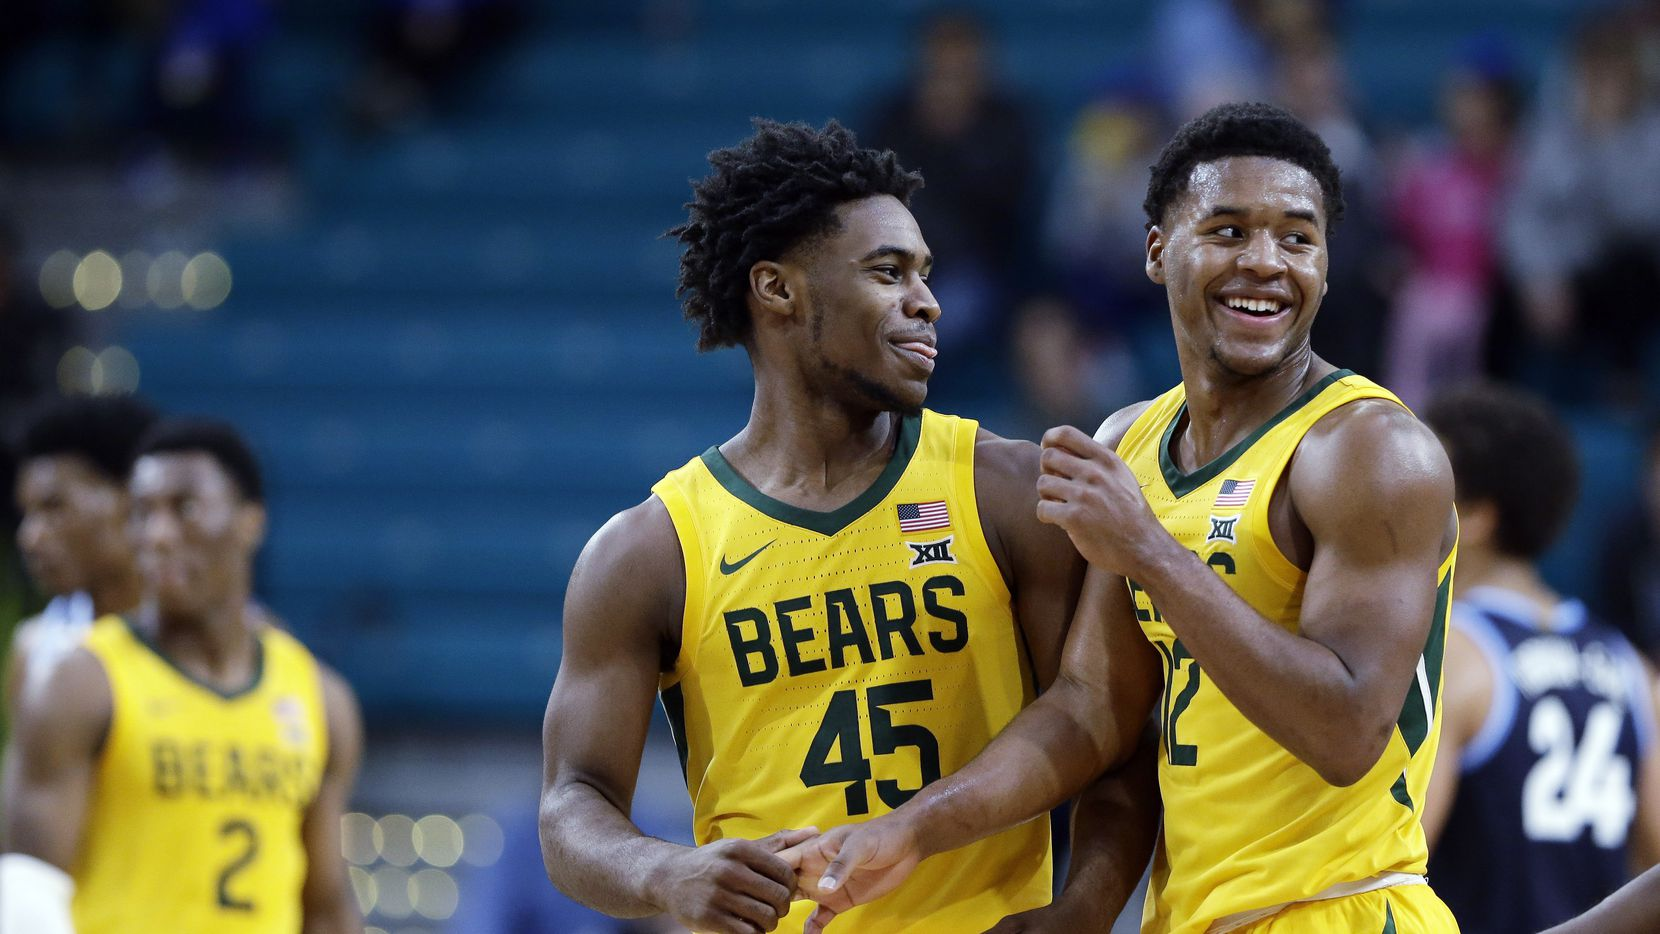 FILE - In this Sunday, Nov. 24, 2019 file photo, Baylor guard Davion Mitchell (45) and guard Jared Butler (12) react late in the second half of an NCAA college basketball championship game against Villanova at the Myrtle Beach Invitational in Conway, S.C. There really are no tougher matchups for Baylor guards Jared Butler, Davion Mitchell and MaCio Teague than in those countless hours they spend in the gym going 1-on-1 against each other. Or for opposing teams when that trio of guards is on the court together for the Bears, the Big 12 champions and a No. 1 seed in the NCAA Tournament for the first time.  (AP Photo/Gerry Broome, File)